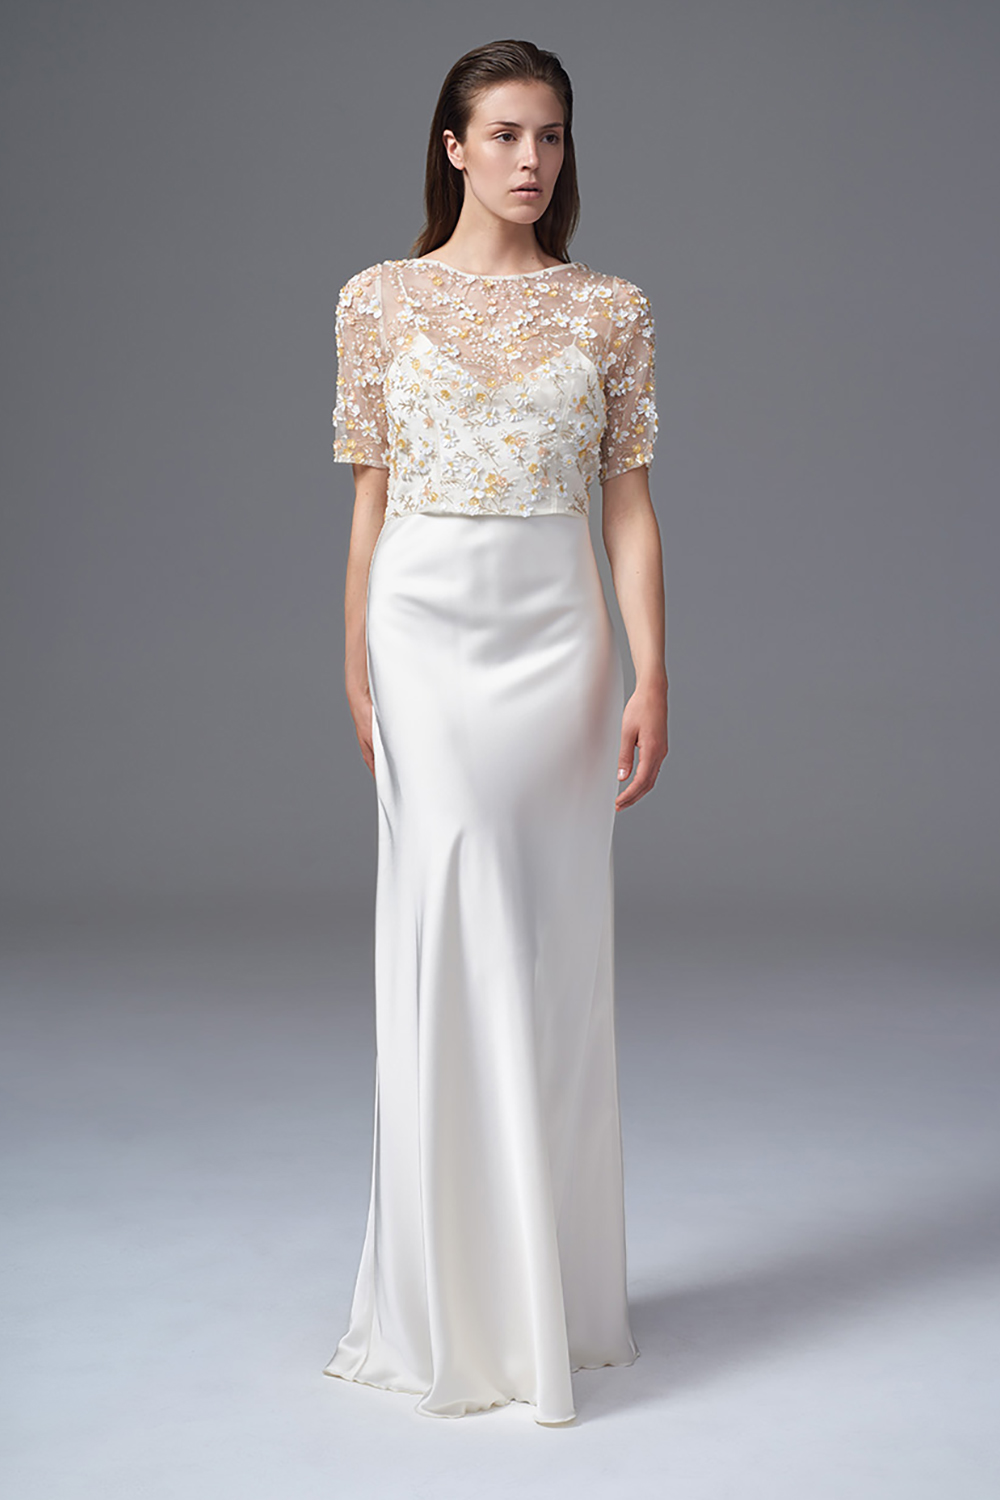 THE RAF FULLY HAND BEADED KEYHOLE BACK JACKET AND CLASSIC IRIS SLIP. BRIDAL WEDDING DRESS BY HALFPENNY LONDON